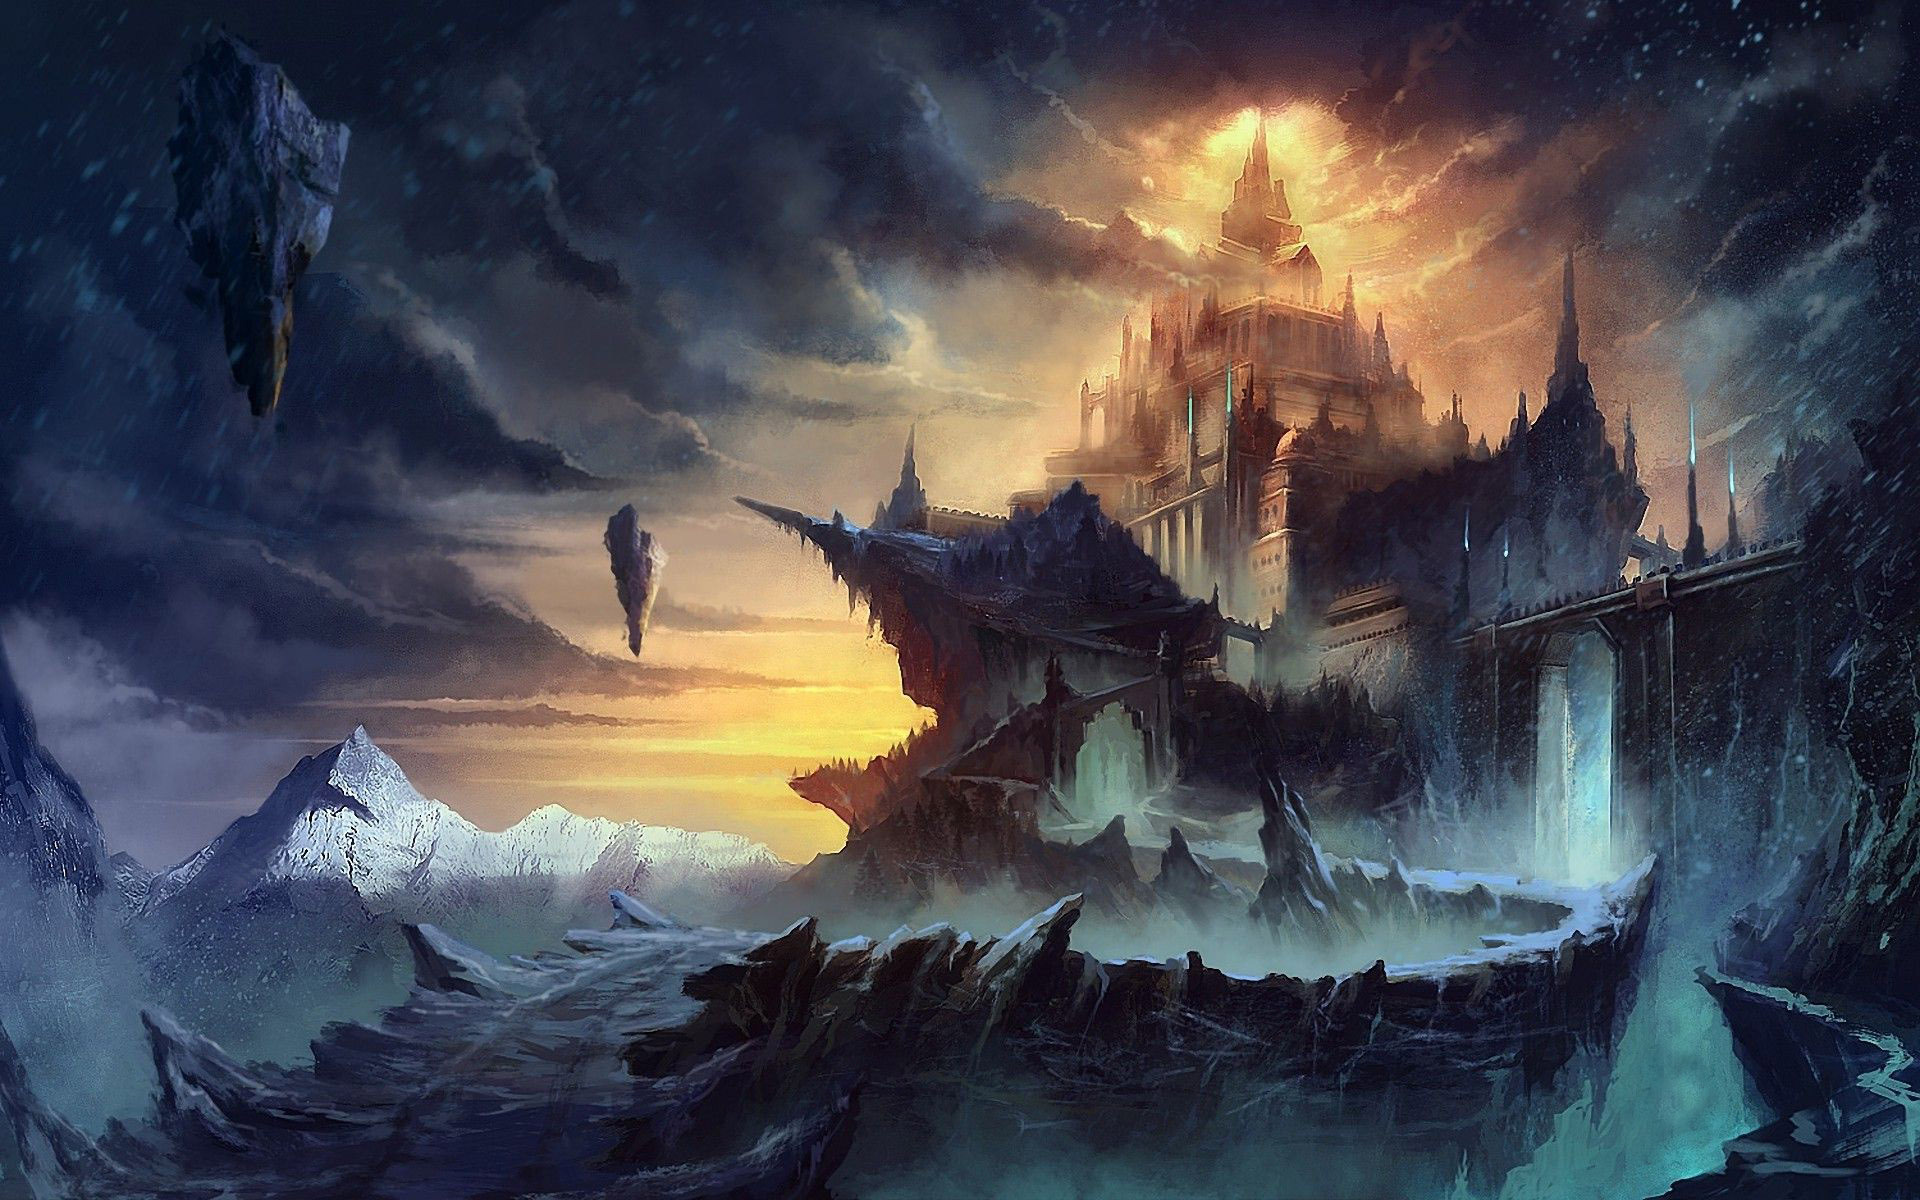 castle-on-the-icy-mountain-peak-fantasy-hd-wallpaper-1920x1200-4994.jpg